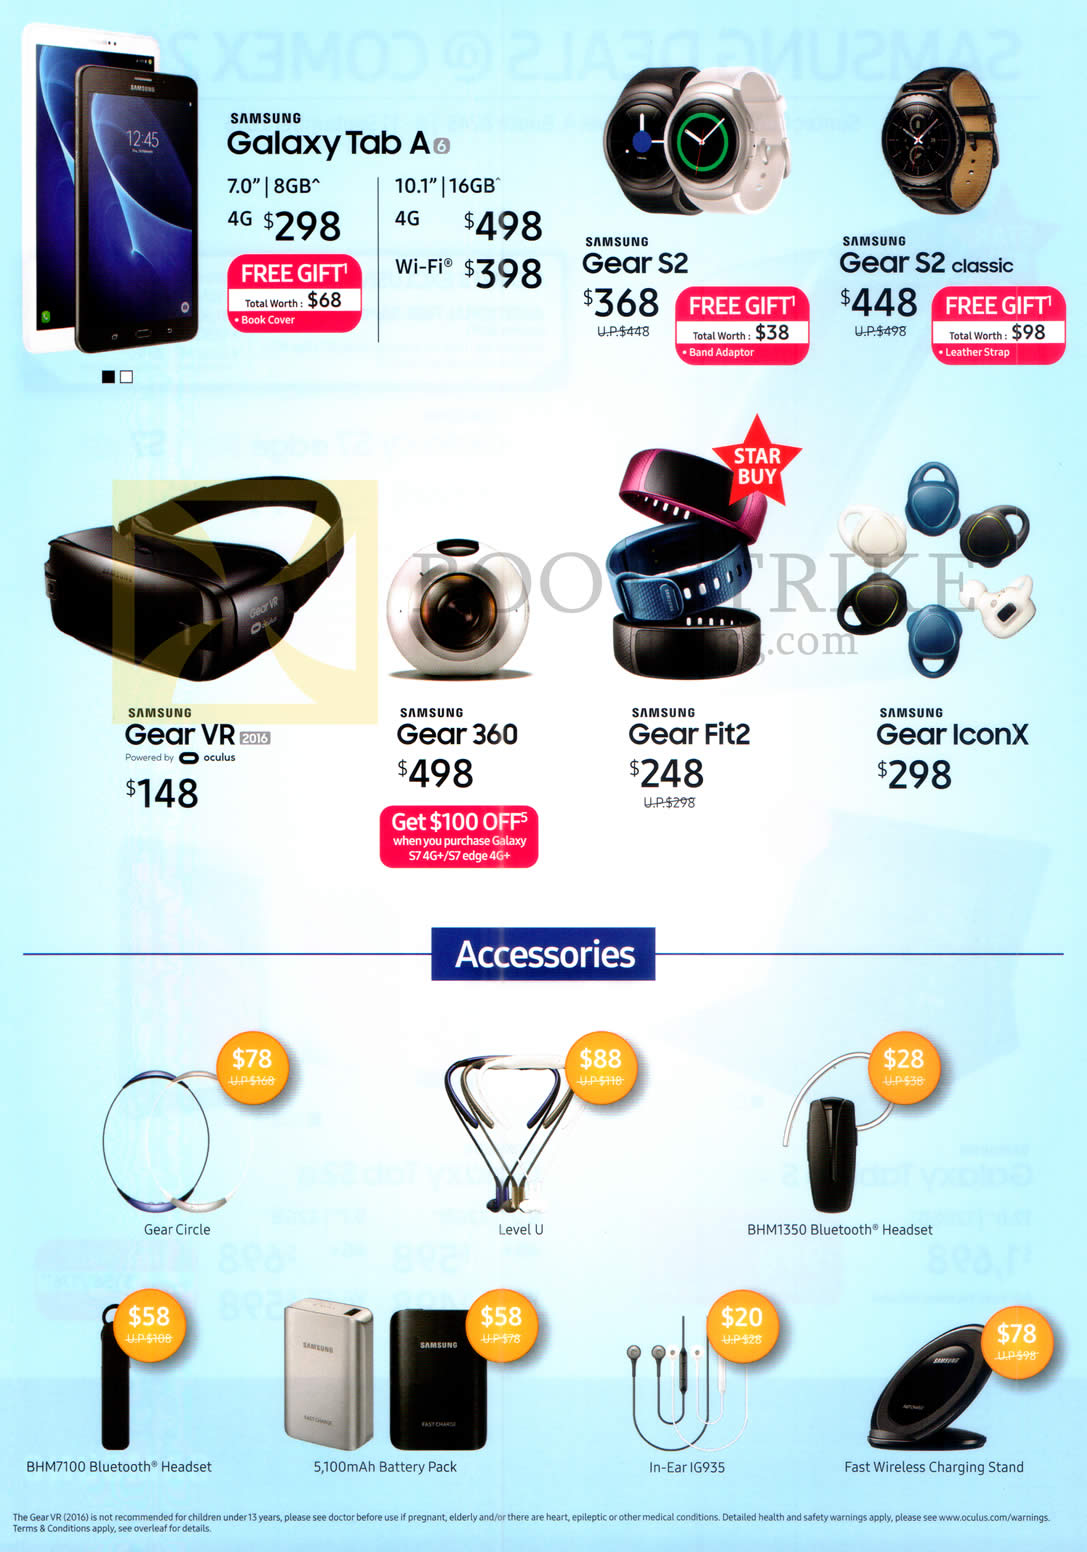 COMEX 2016 price list image brochure of Samsung Mobile SmartPhones, Fitness Watches, Accessories, Galaxy Tab A, Gear S2, S2 Classic, VR, 360, Fit2, IconX, Gear Circle, Headset, Battery Pack, Charging Stand